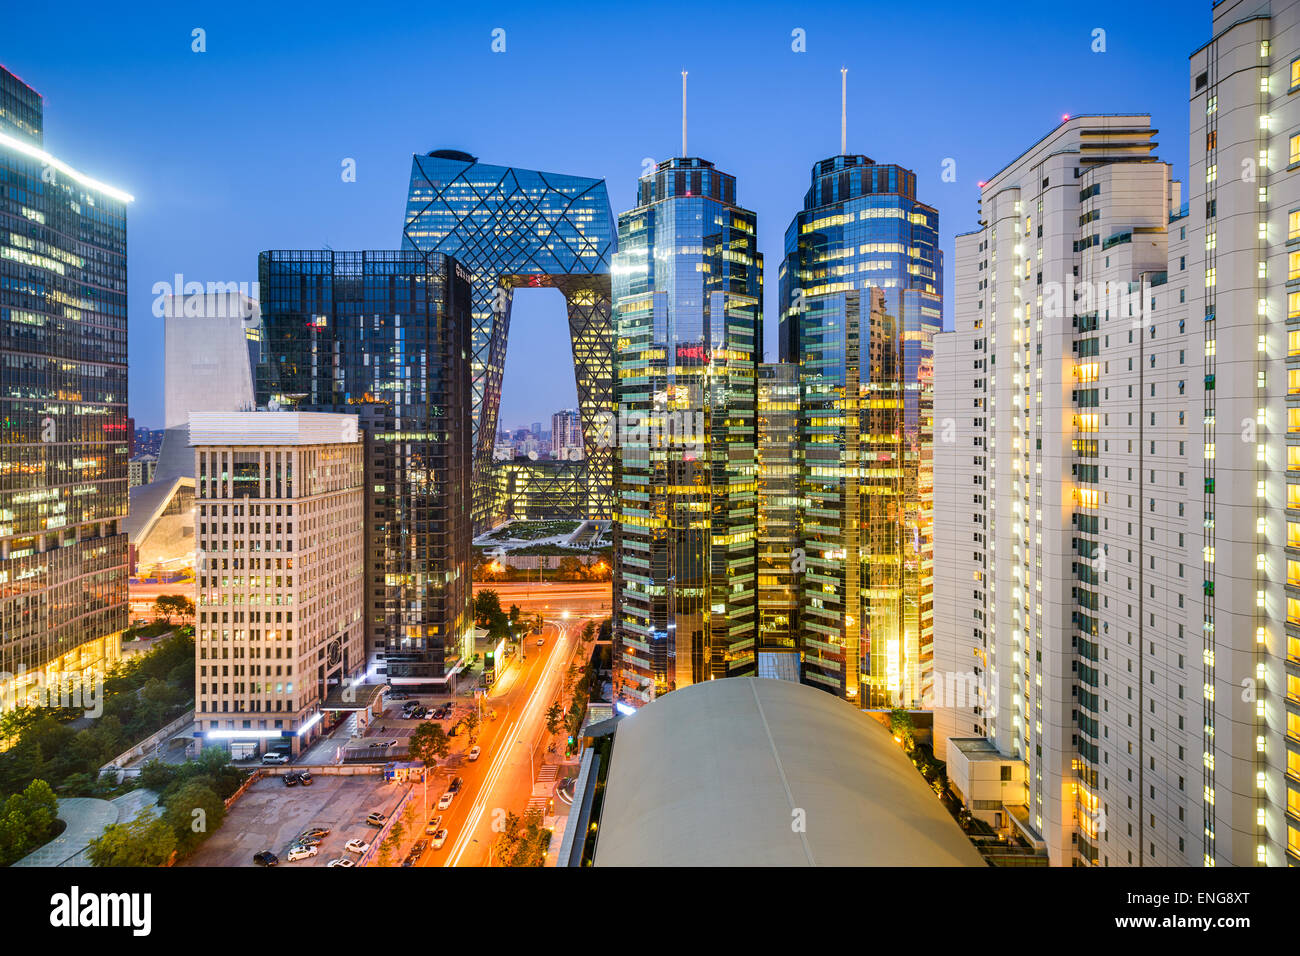 Beijing, China Central Business District cityscape. - Stock Image